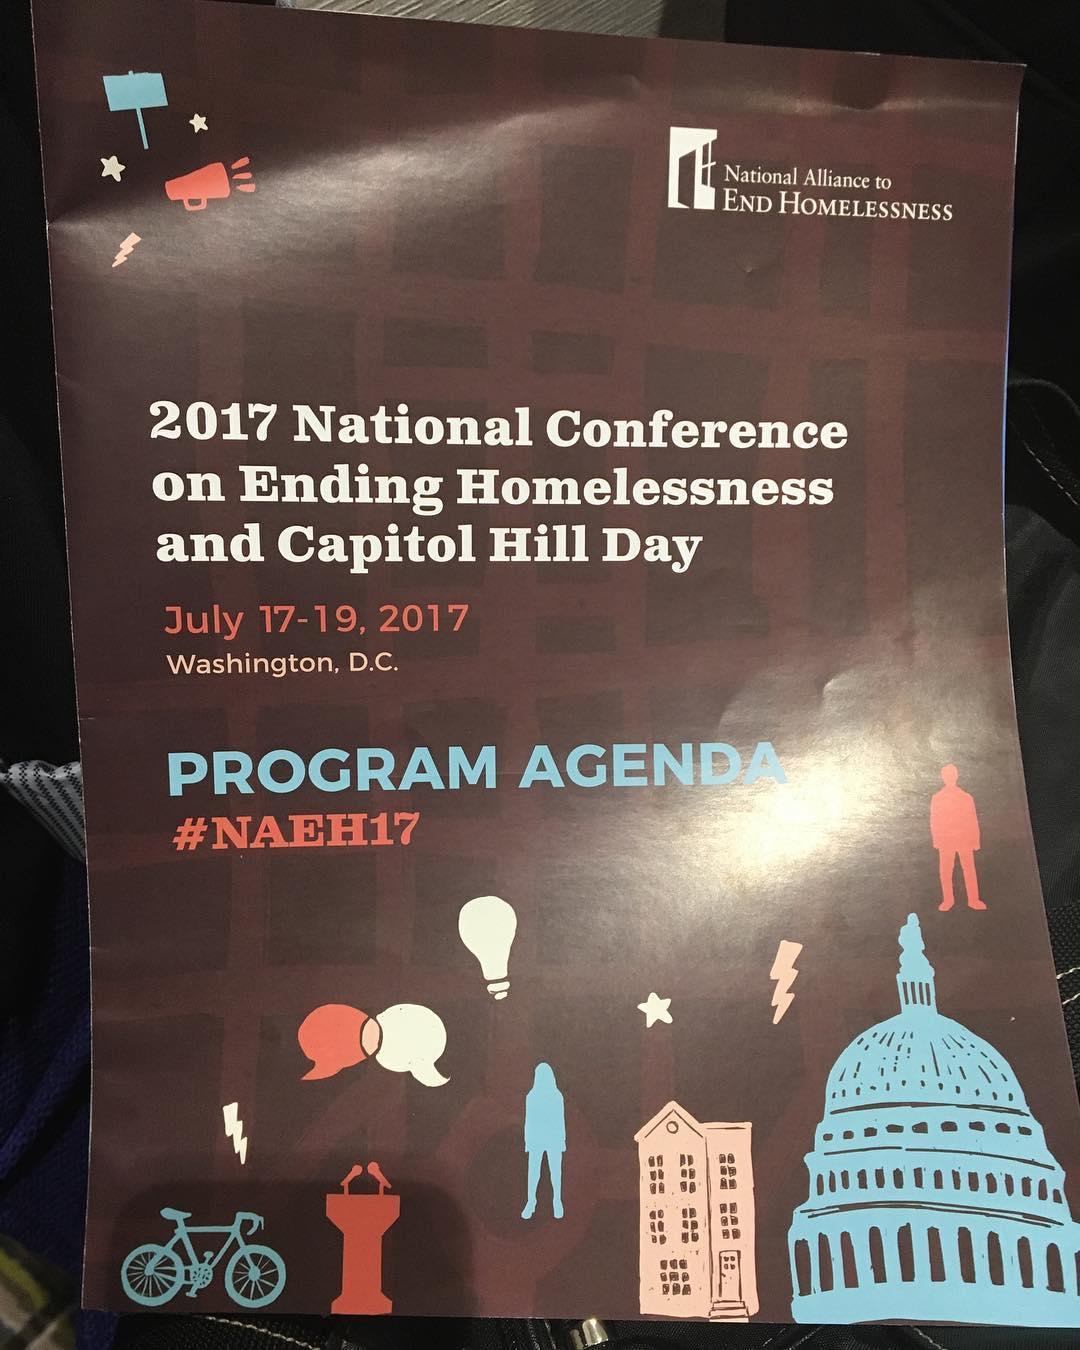 Honored to join so many national leaders in the vital work to #endhomelessness. #NAEH17